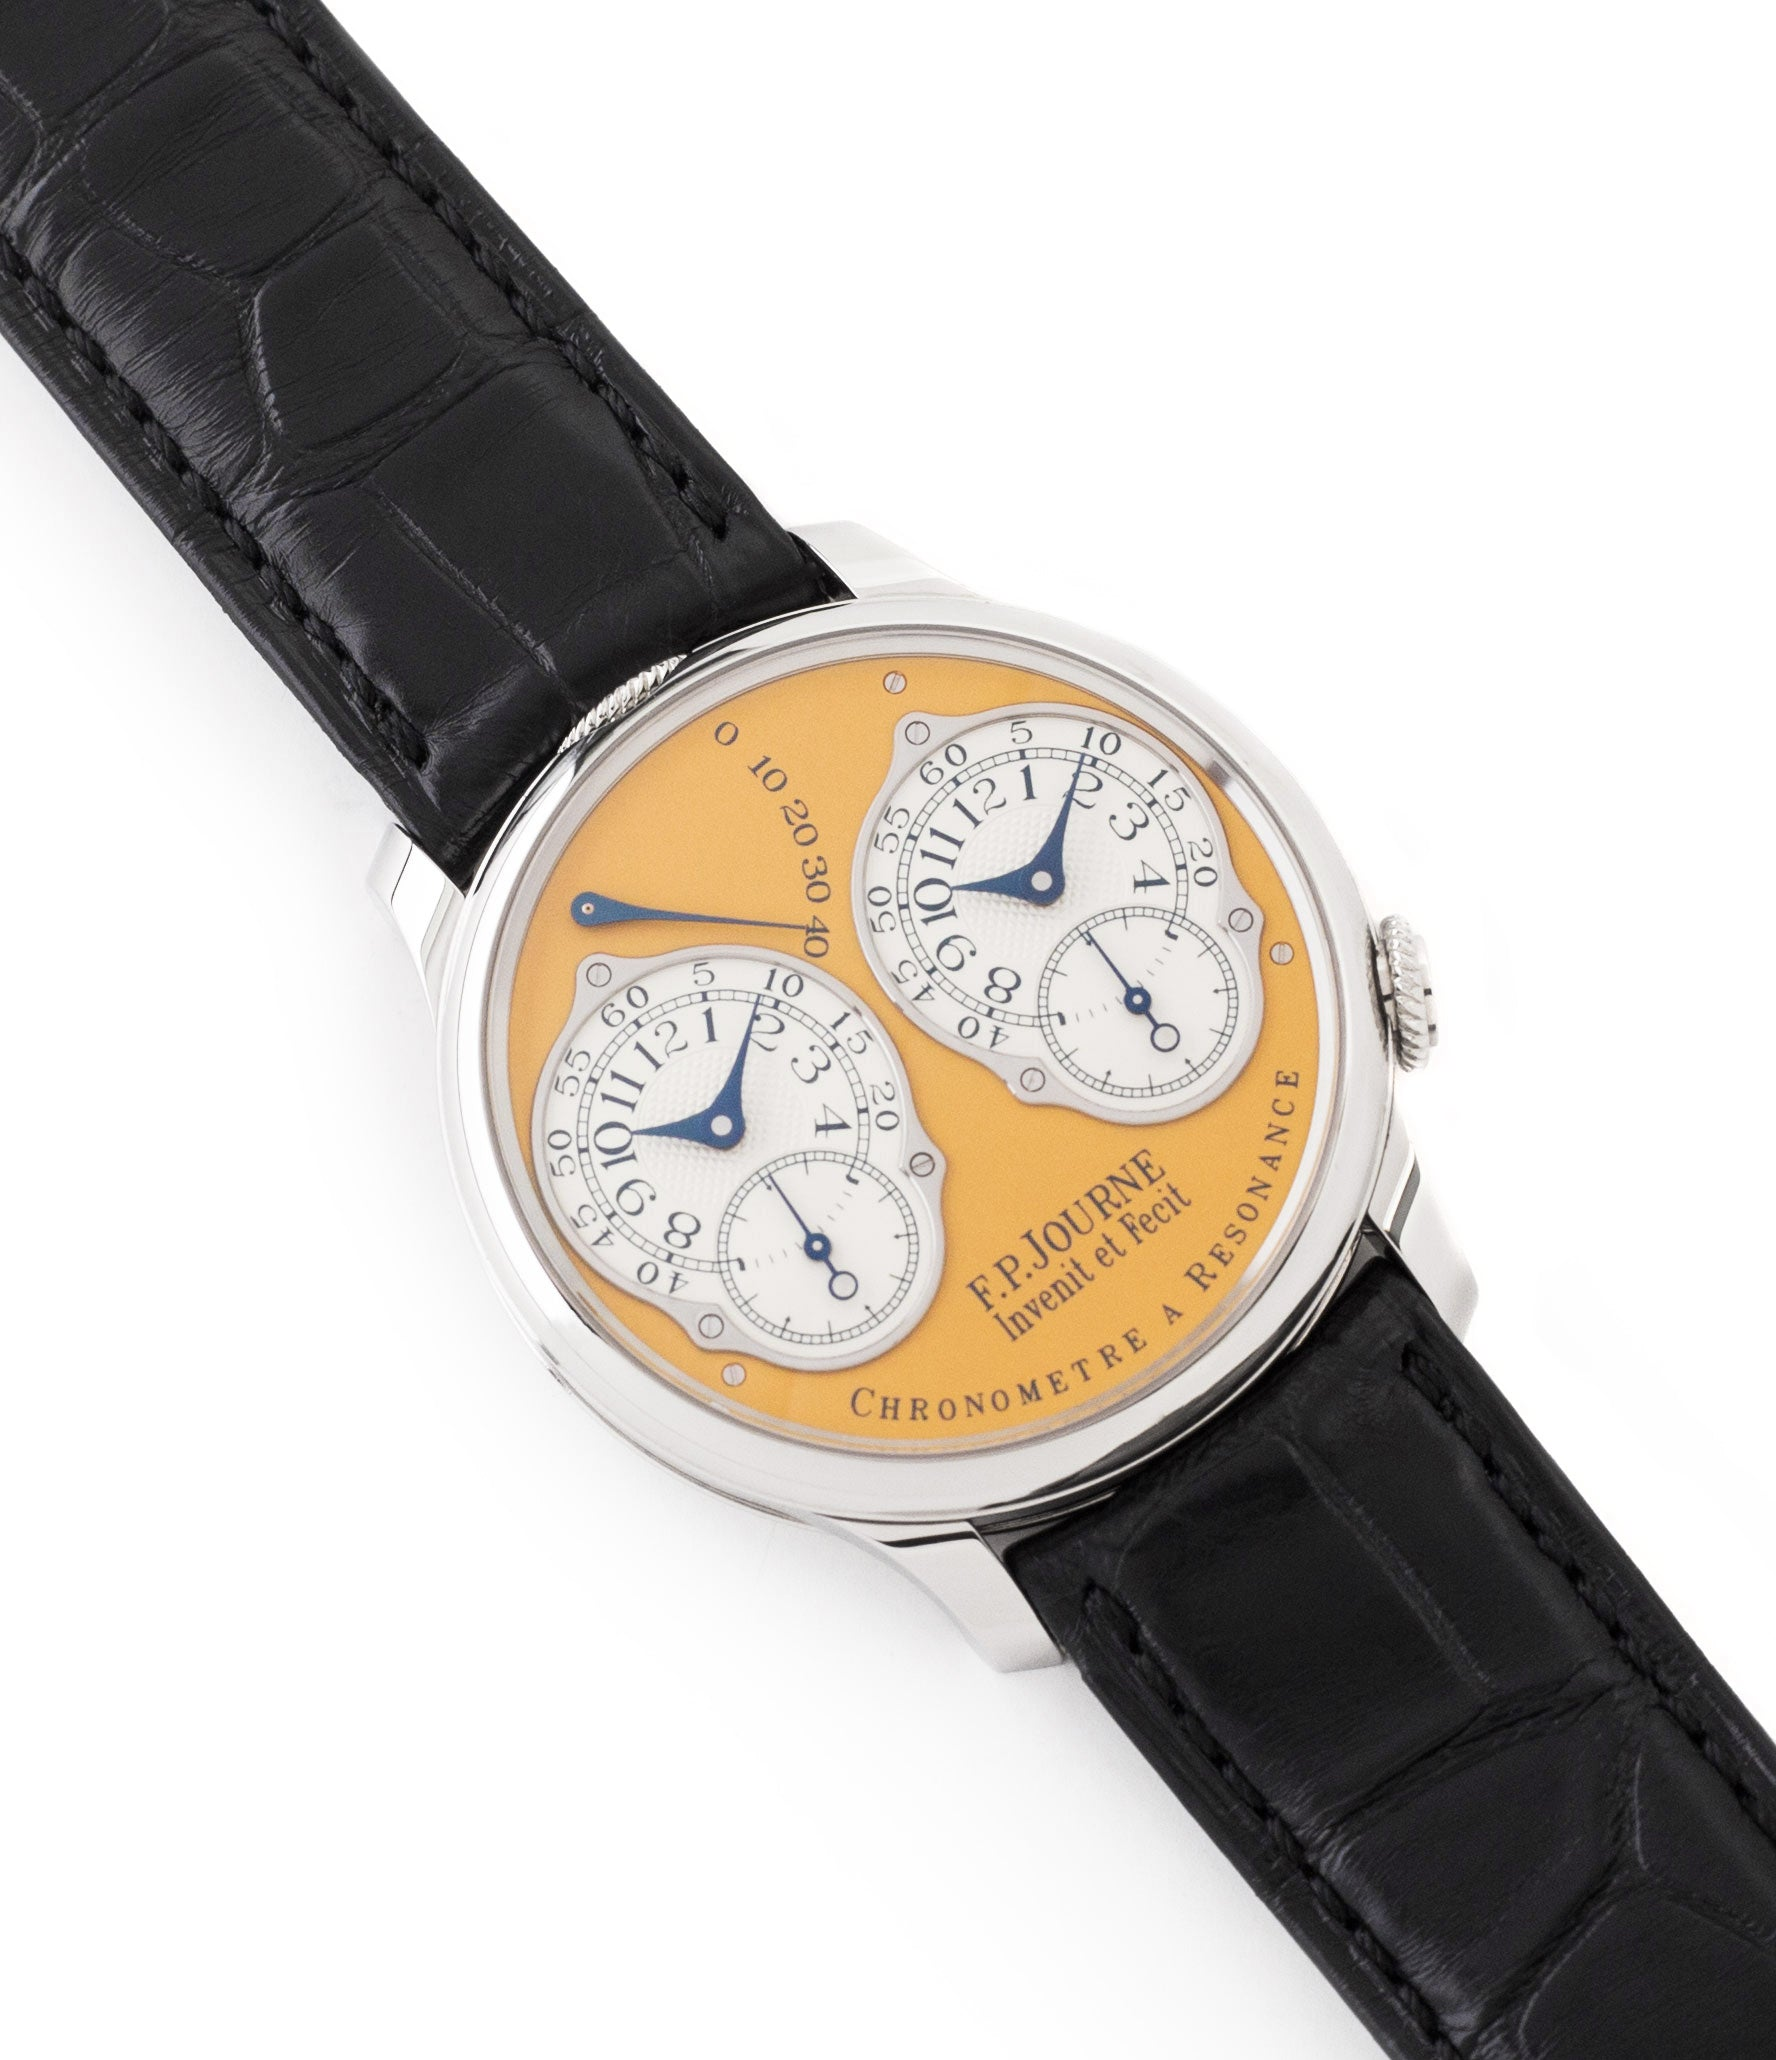 for sale F. P. Journe Chronomètre à Résonance Steel 38 mm Limited Edition Set of 5 watches for sale online at A Collected Man London approved UK retailer independent watchmakers